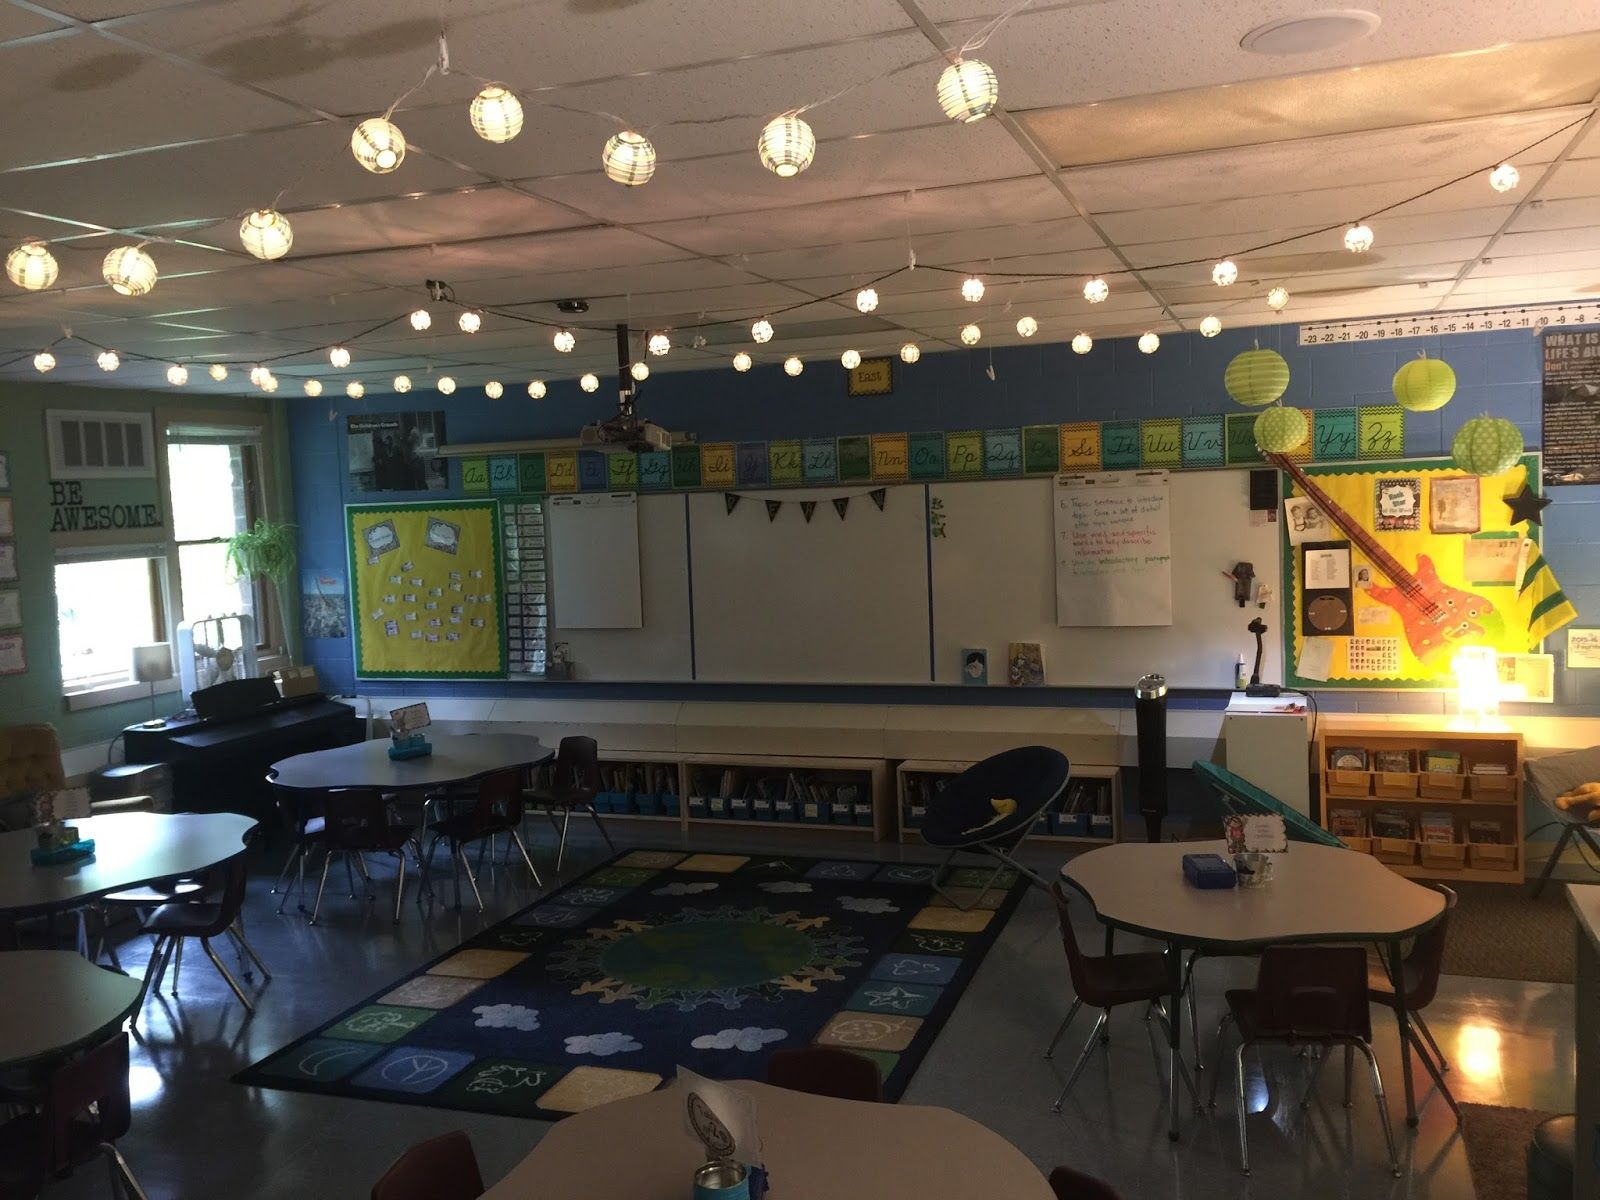 Classroom Lighting Design : I like the lighting in this one flexible learning